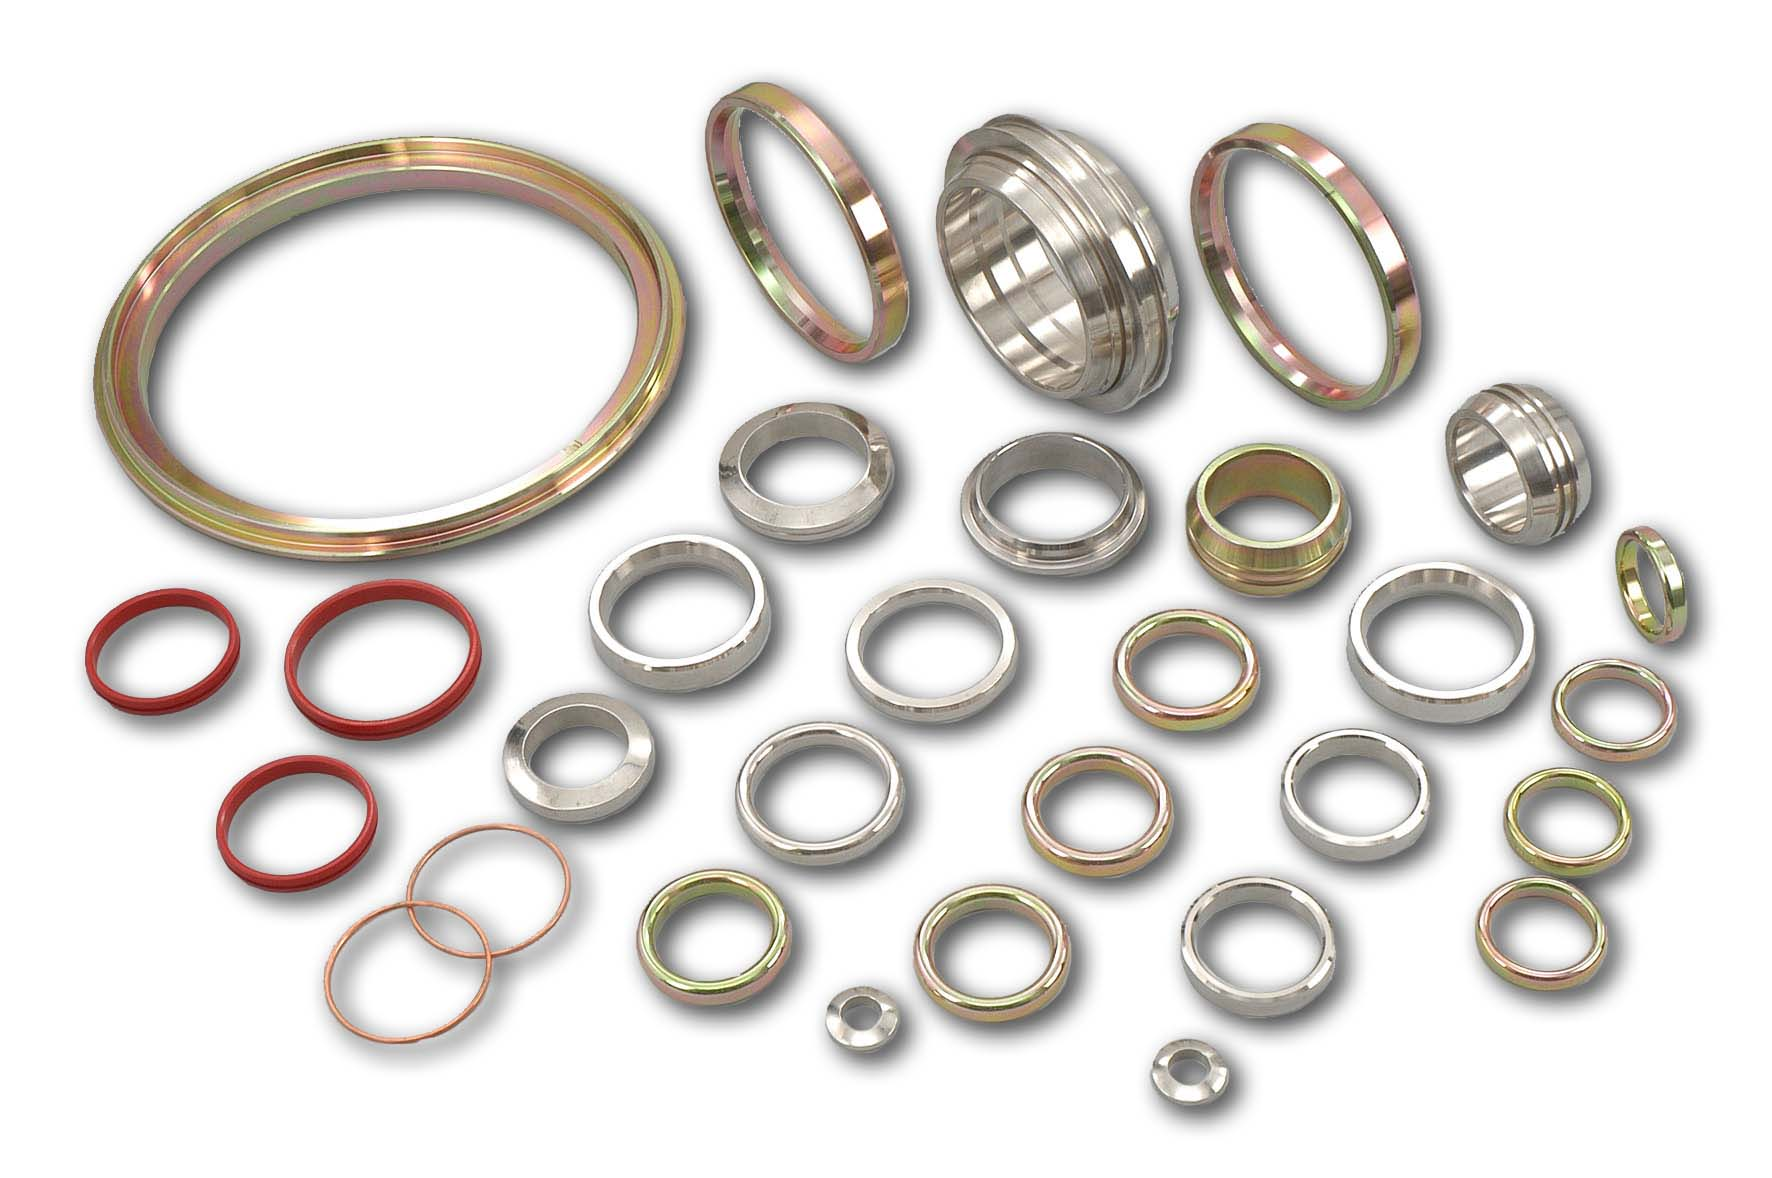 RING JOINT SS304